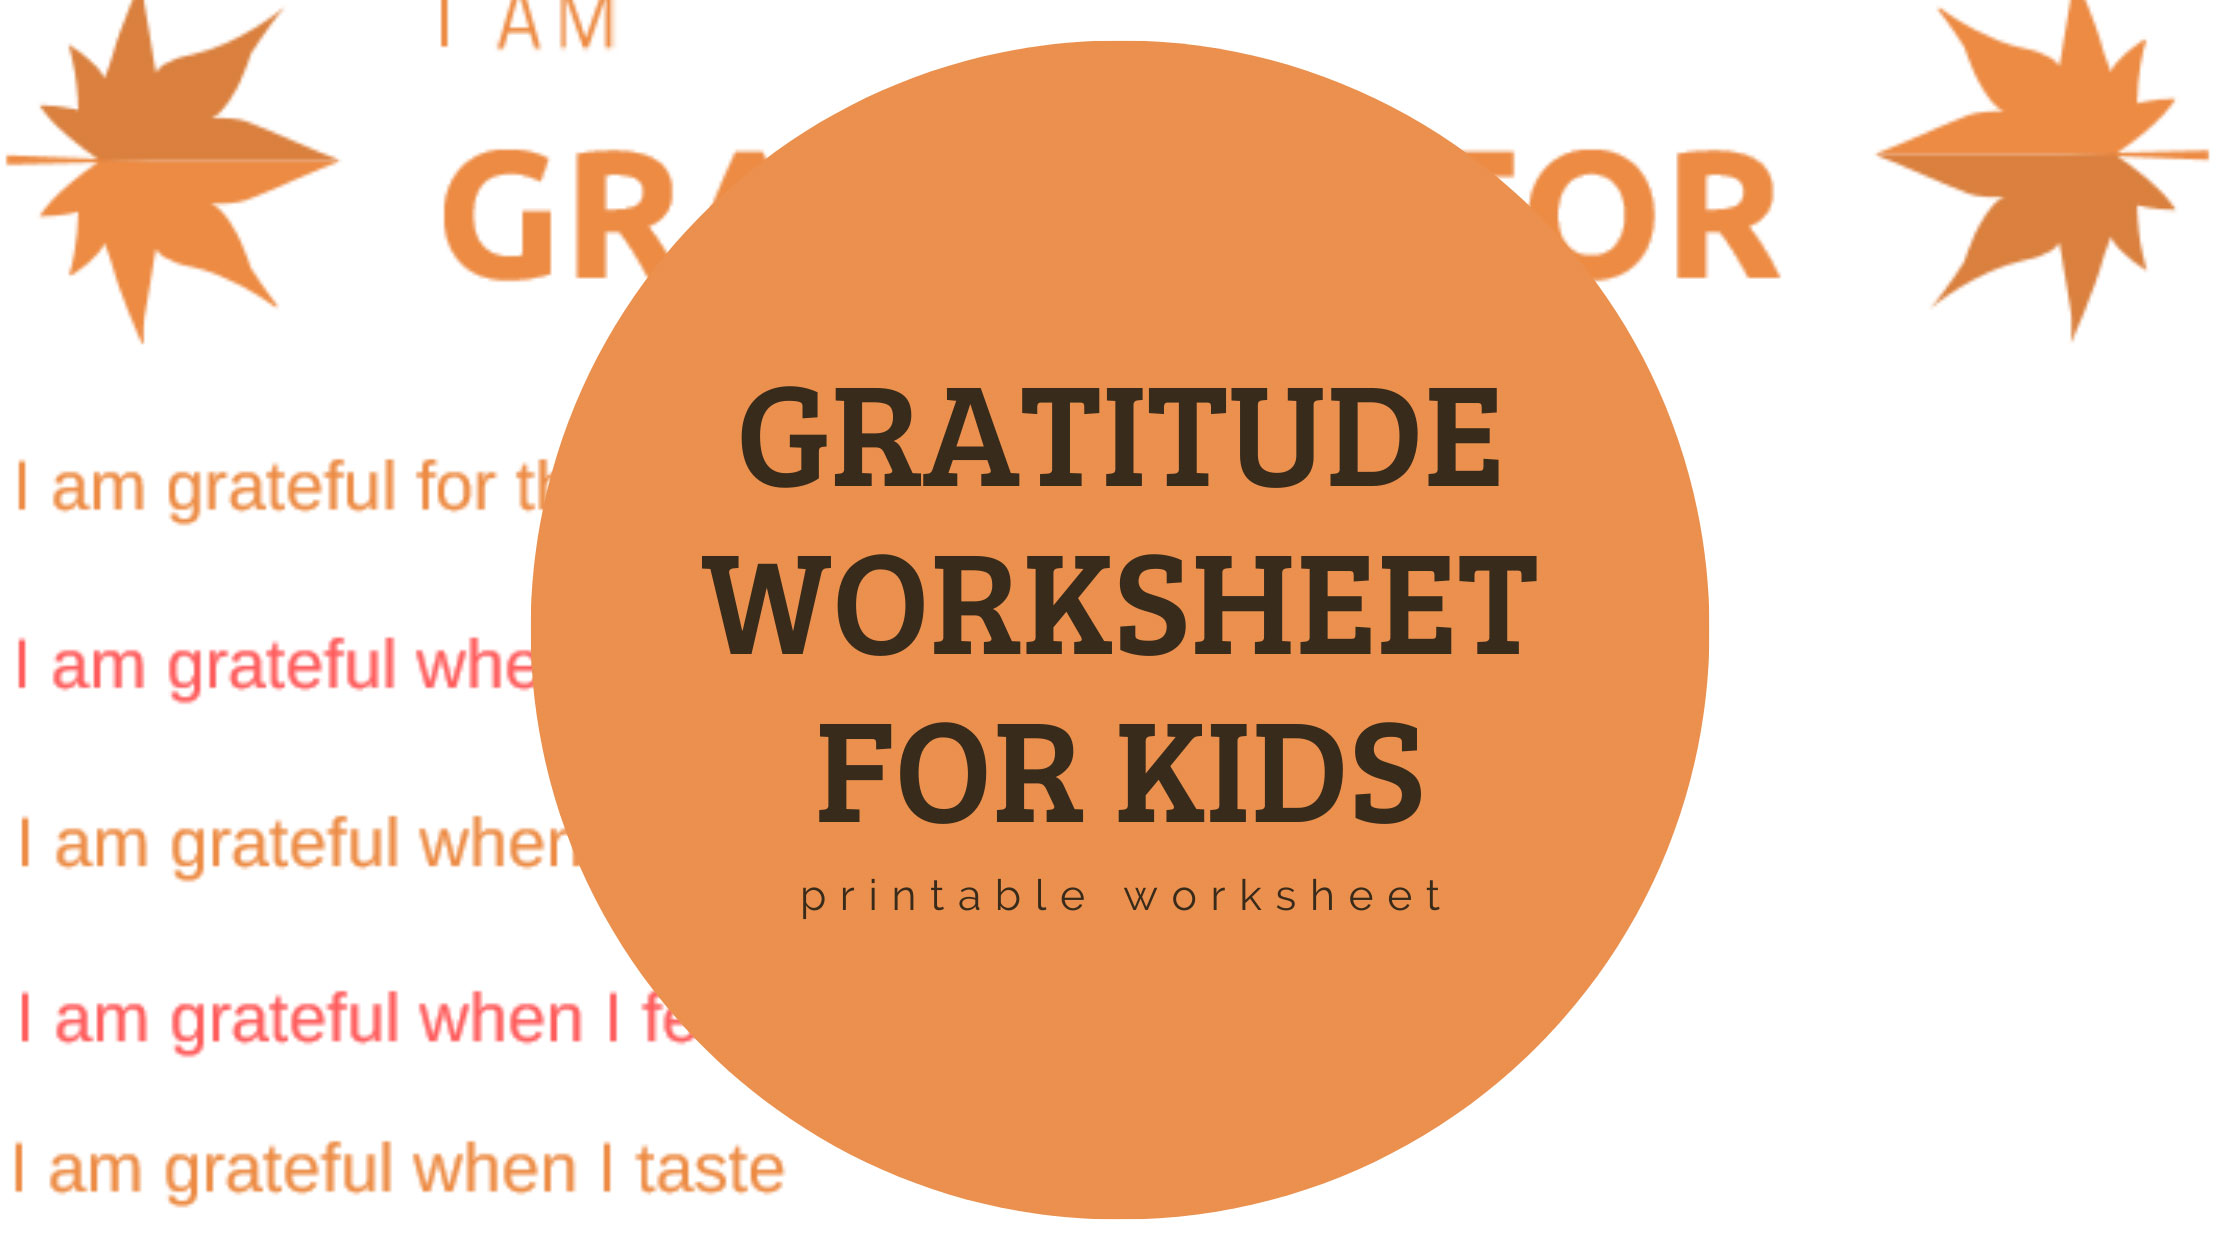 Fun Gratitude Printable Worksheet For Students And Teachers